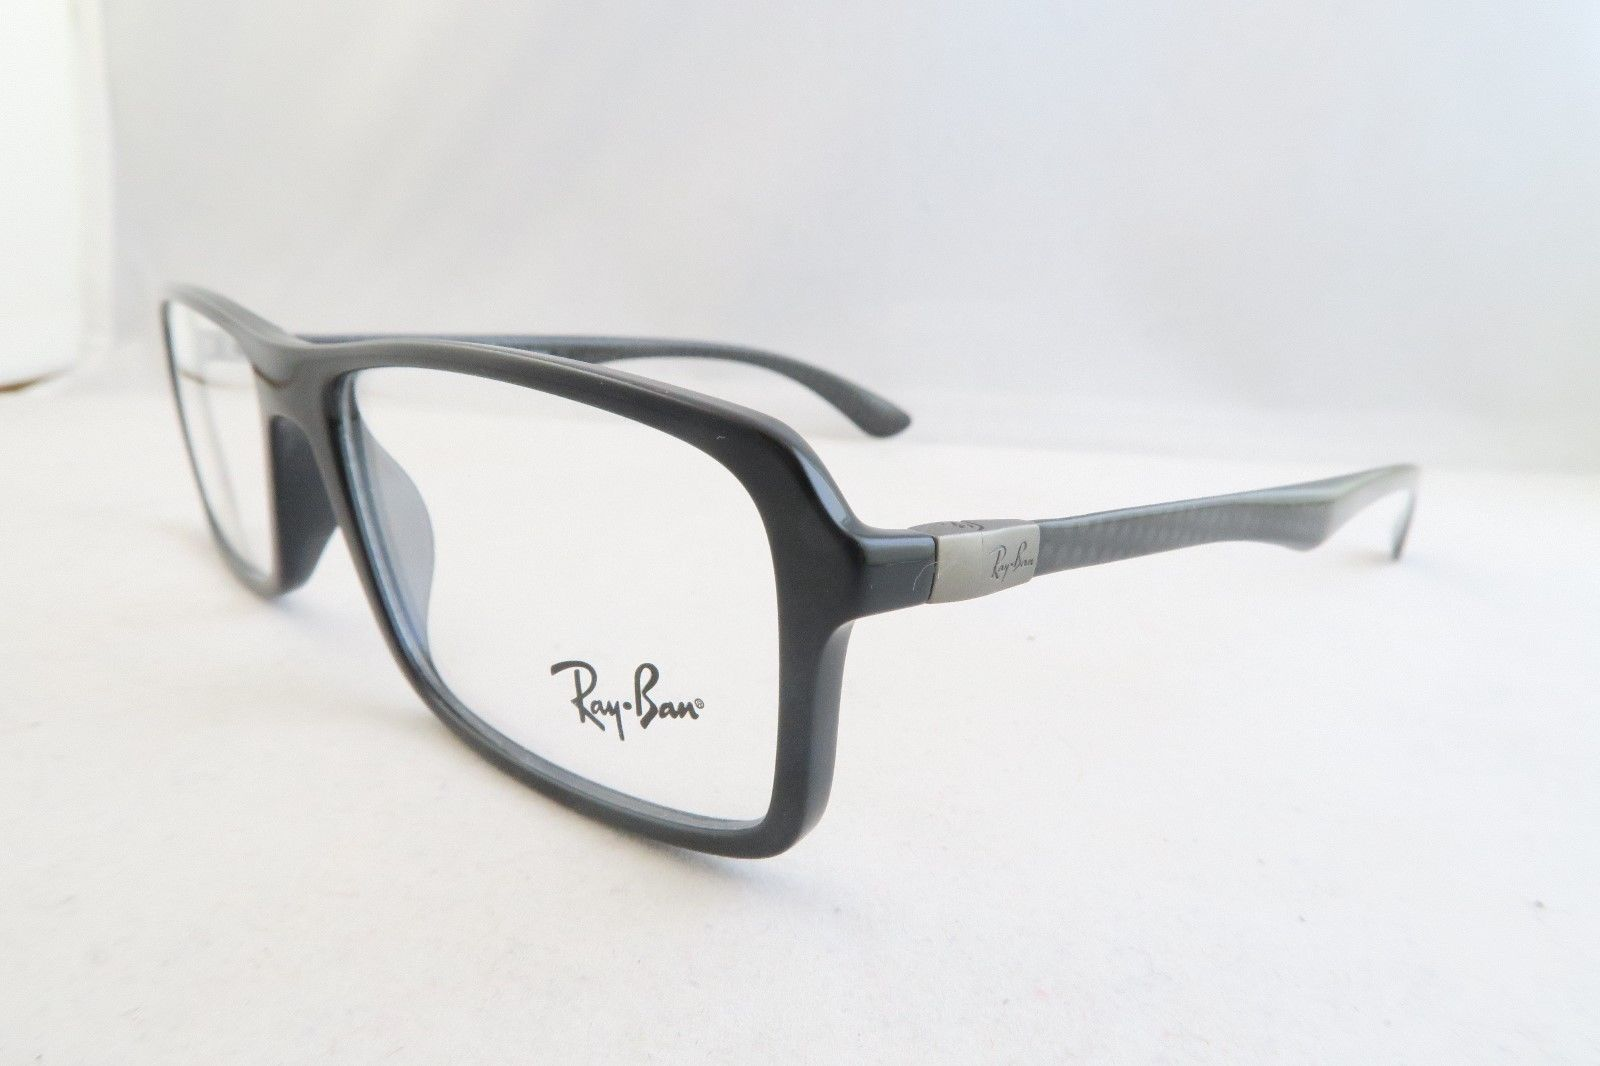 f162ce225c Ray-Ban RB 8902 2000 New Black Carbon Fiber and 12 similar items